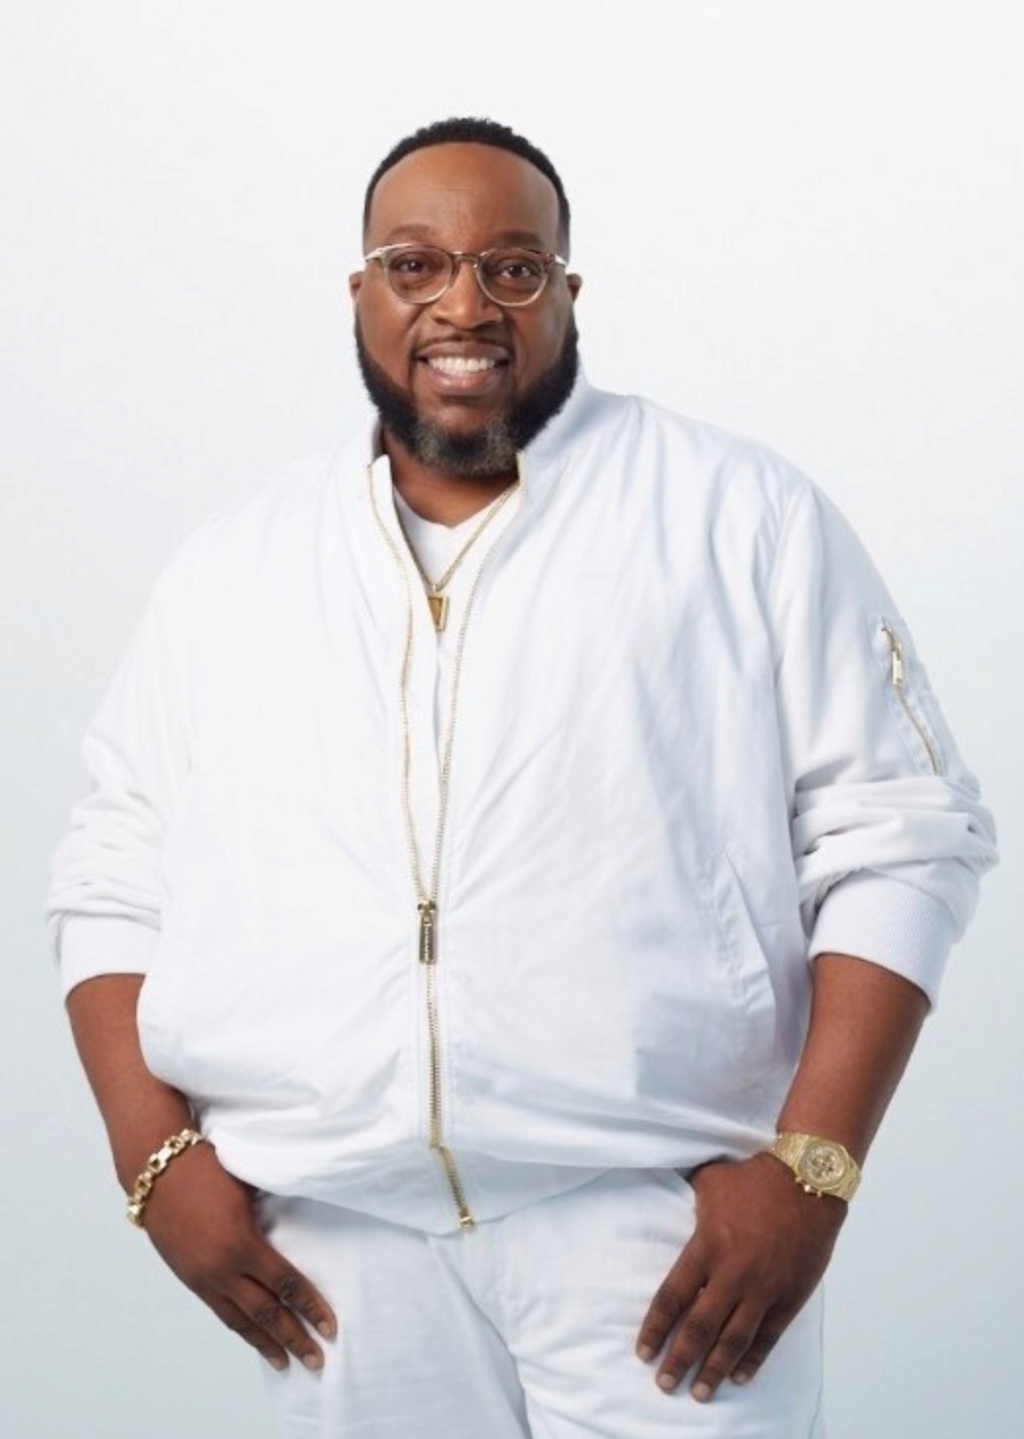 [Gospel Music] Marvin Sapp — Thank You For It All | Download Mp3 Insho495